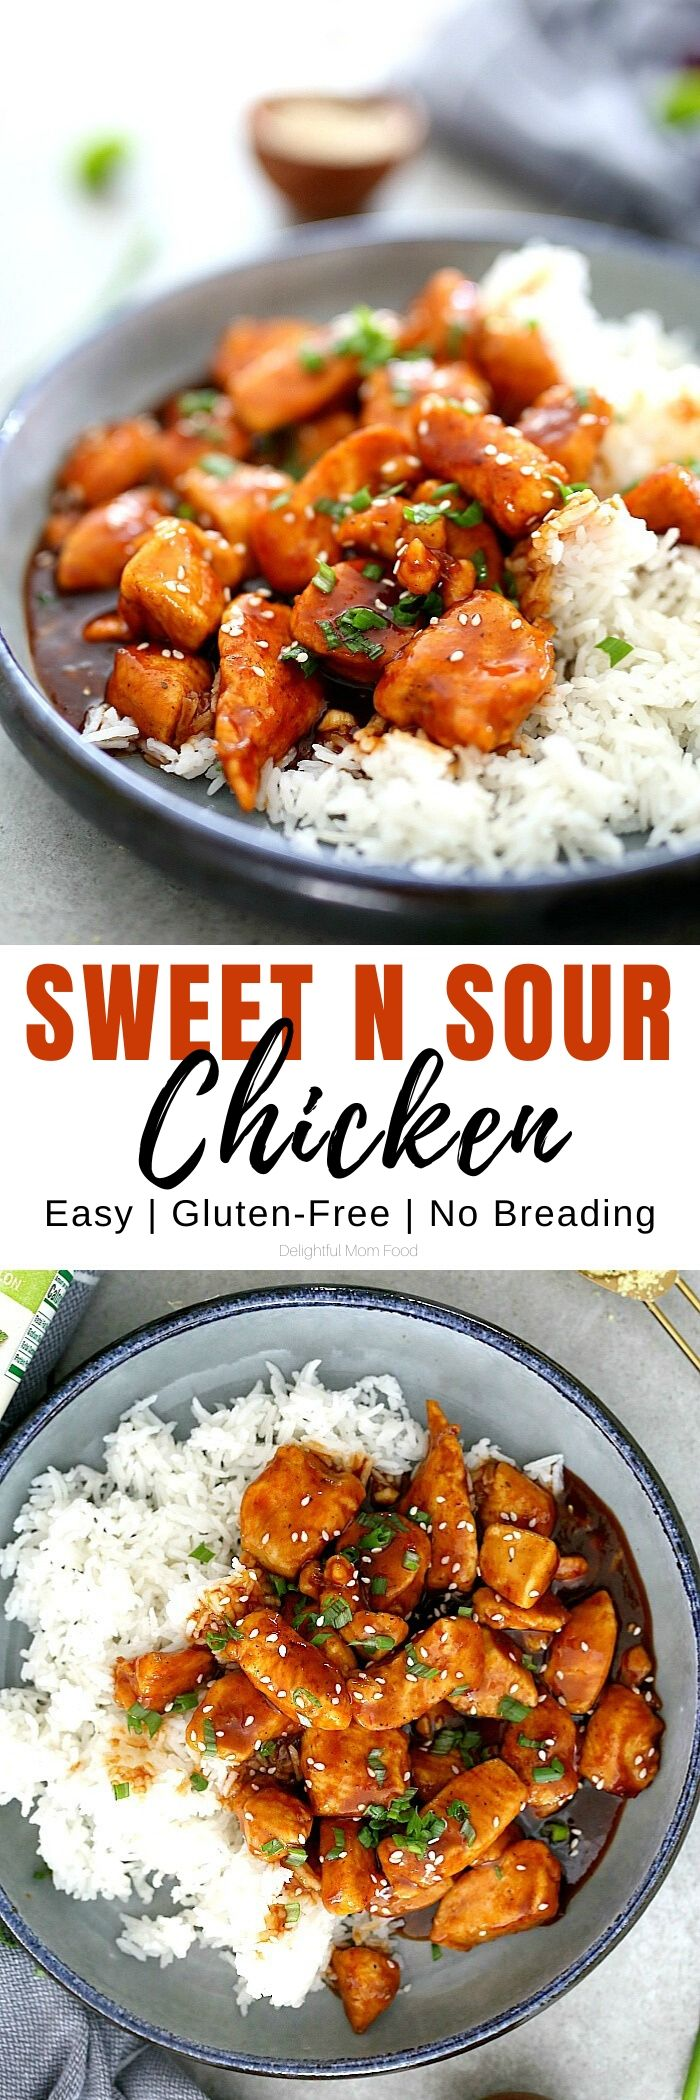 A wholesome and easy Chinese Sweet and Sour Chicken recipe to make on repeat. It is made without breading and coated with an excellent sweet and sour sticky sauce. #ad @Knorr #sweetandsourchicken #chicken #onepan #30minute #maindish #entree #dinner #wholesome #easy #quick #Chinesechicken #sweetandsour #sauce #glutenfree #dairyfree | Recipe at Delightful Mom Food